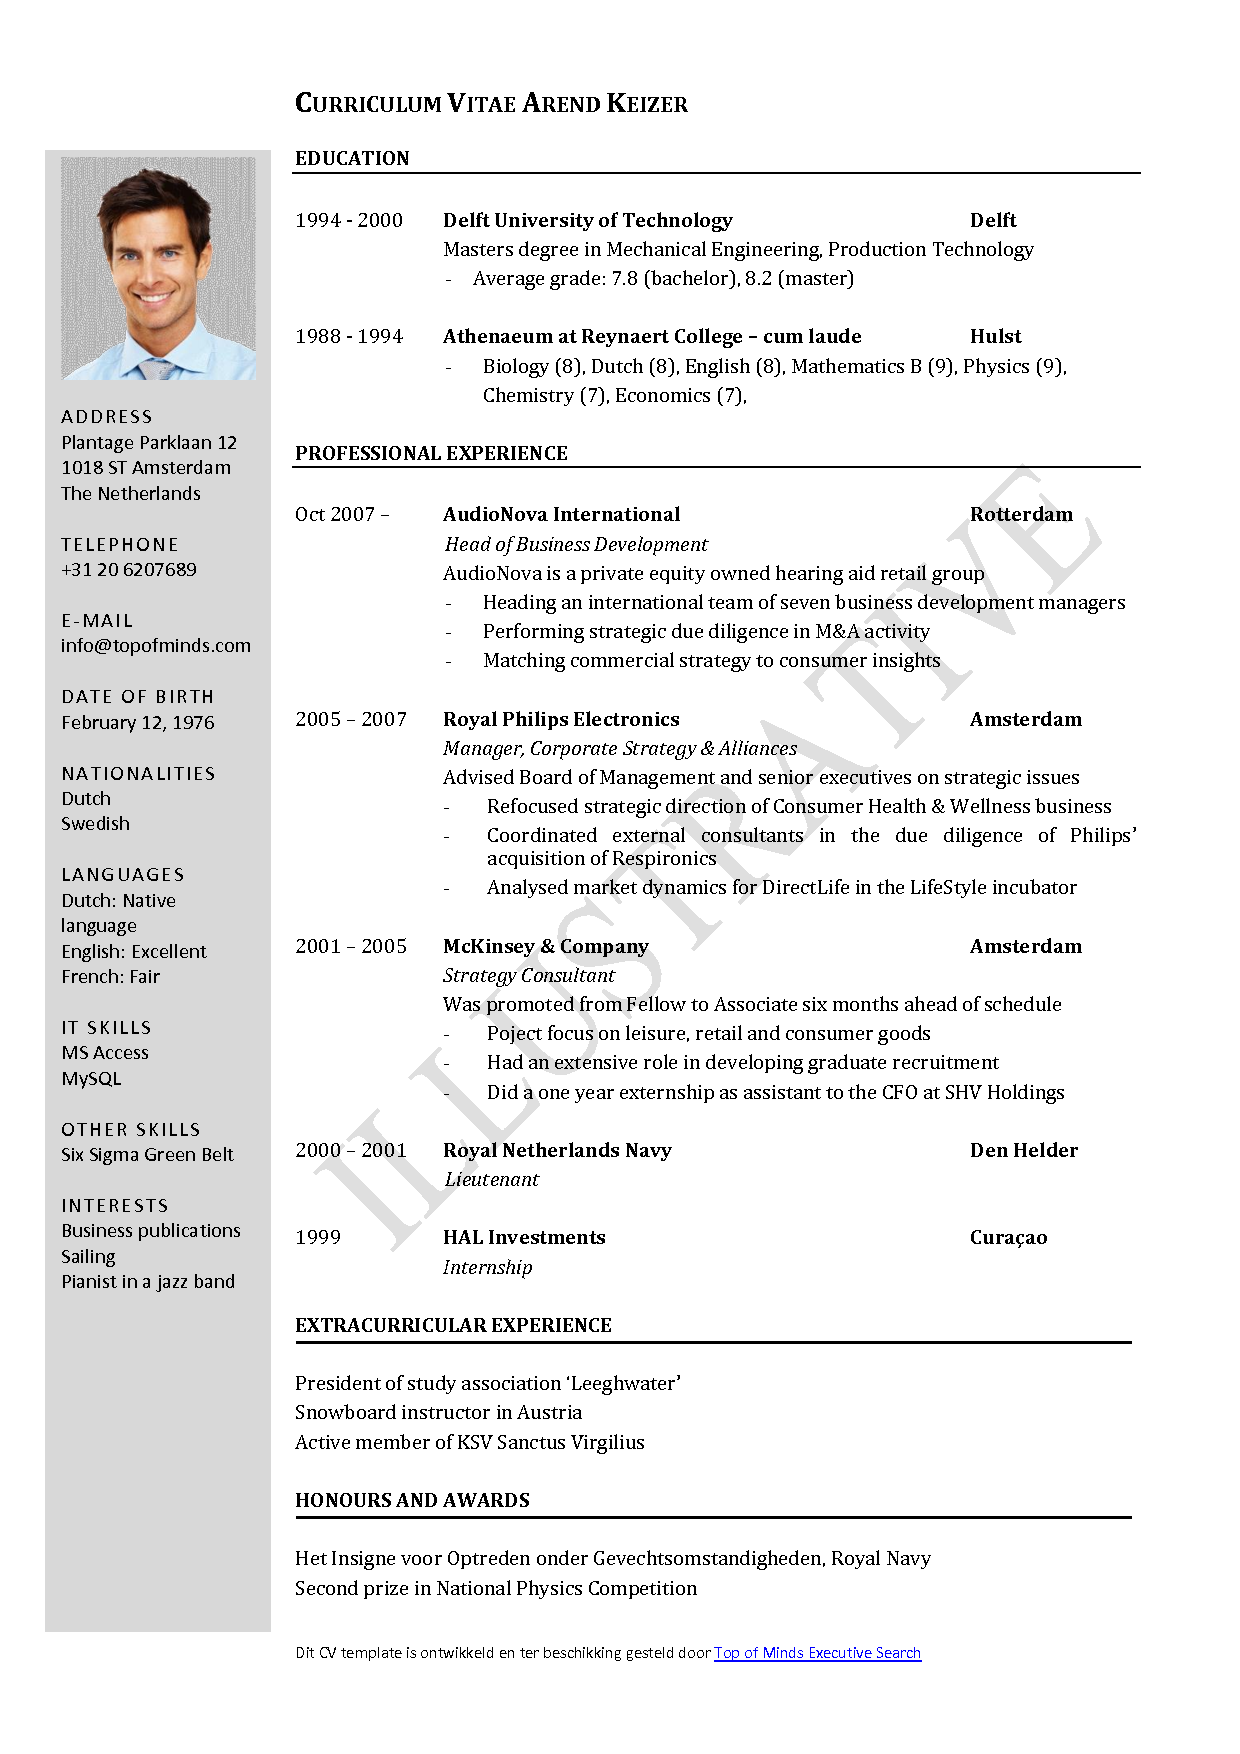 Amazing Free Curriculum Vitae Template Word | Download CV Template Ideas